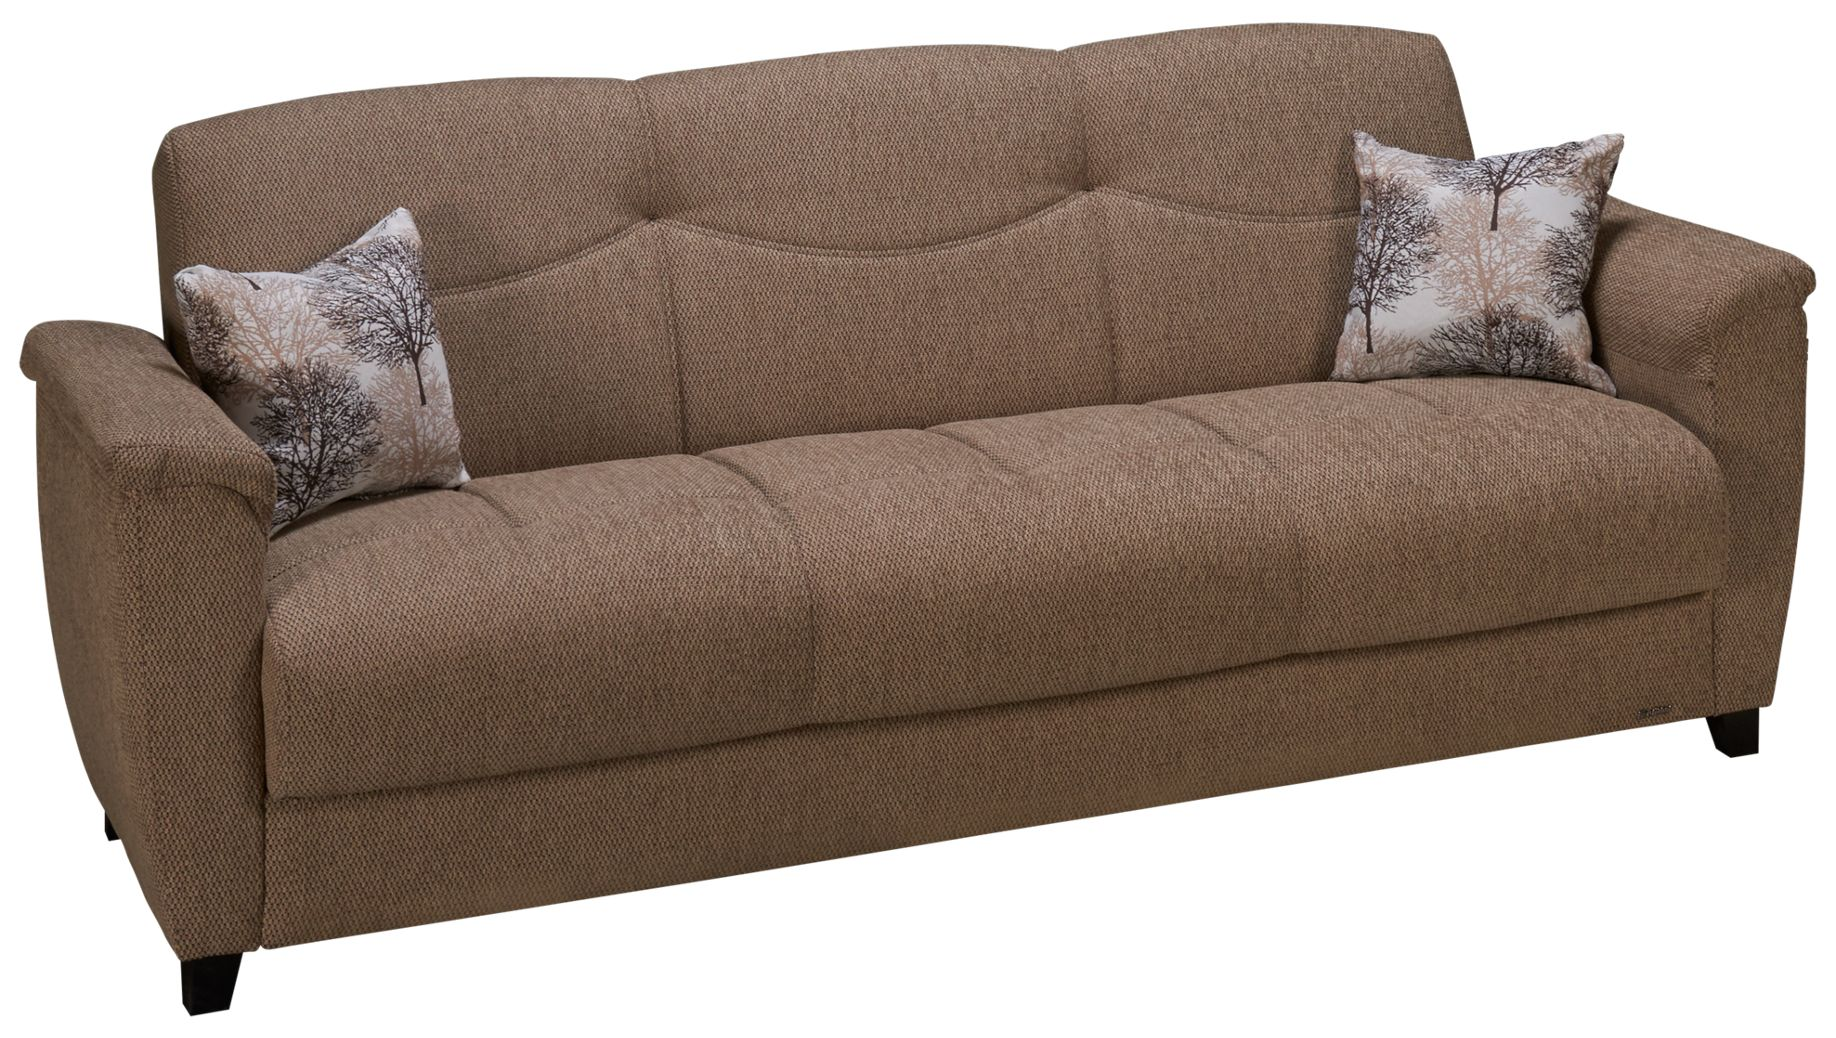 Convertible Sofa With Storage Convertible Sofa Bed With Storage Thesofa